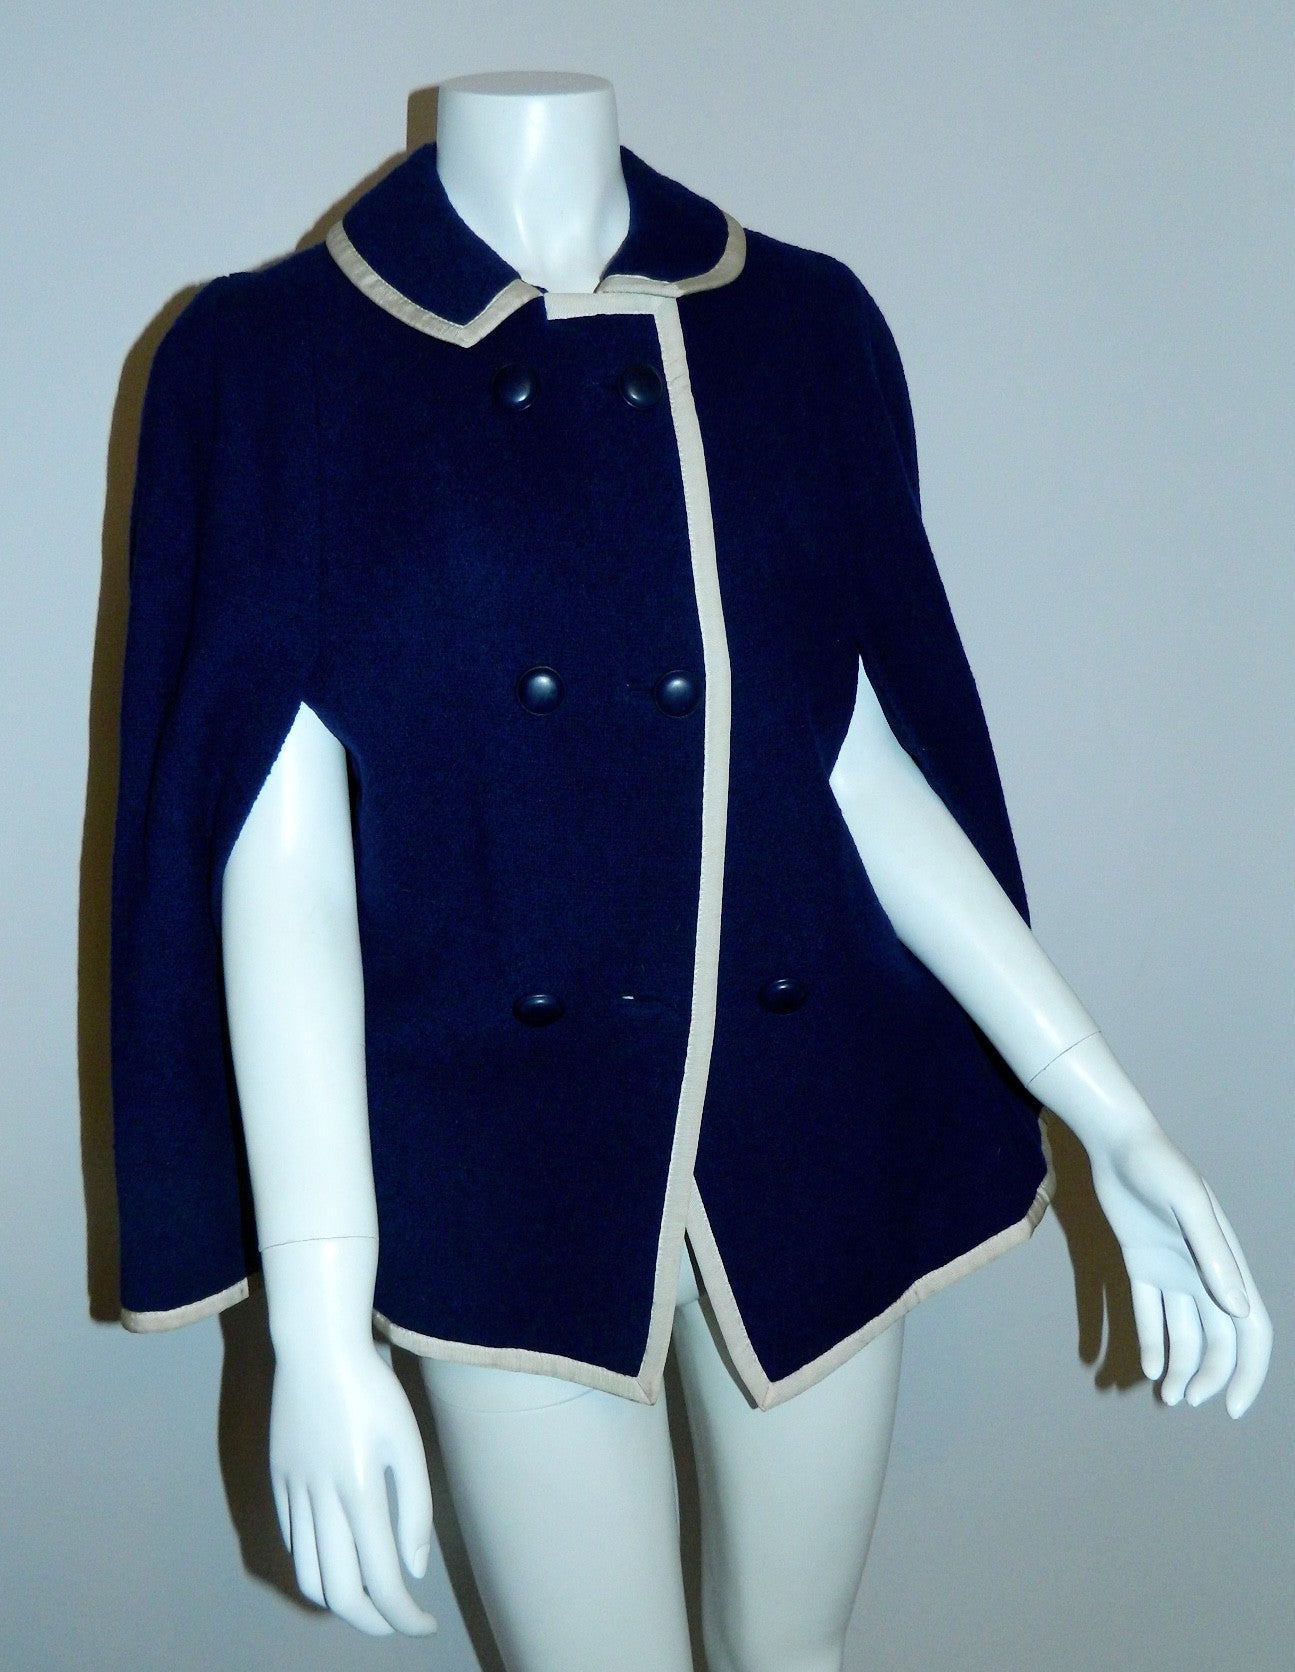 vintage 1960s blue wool cape / Handmacher navy boucle capelet jacket /white grosgrain trim